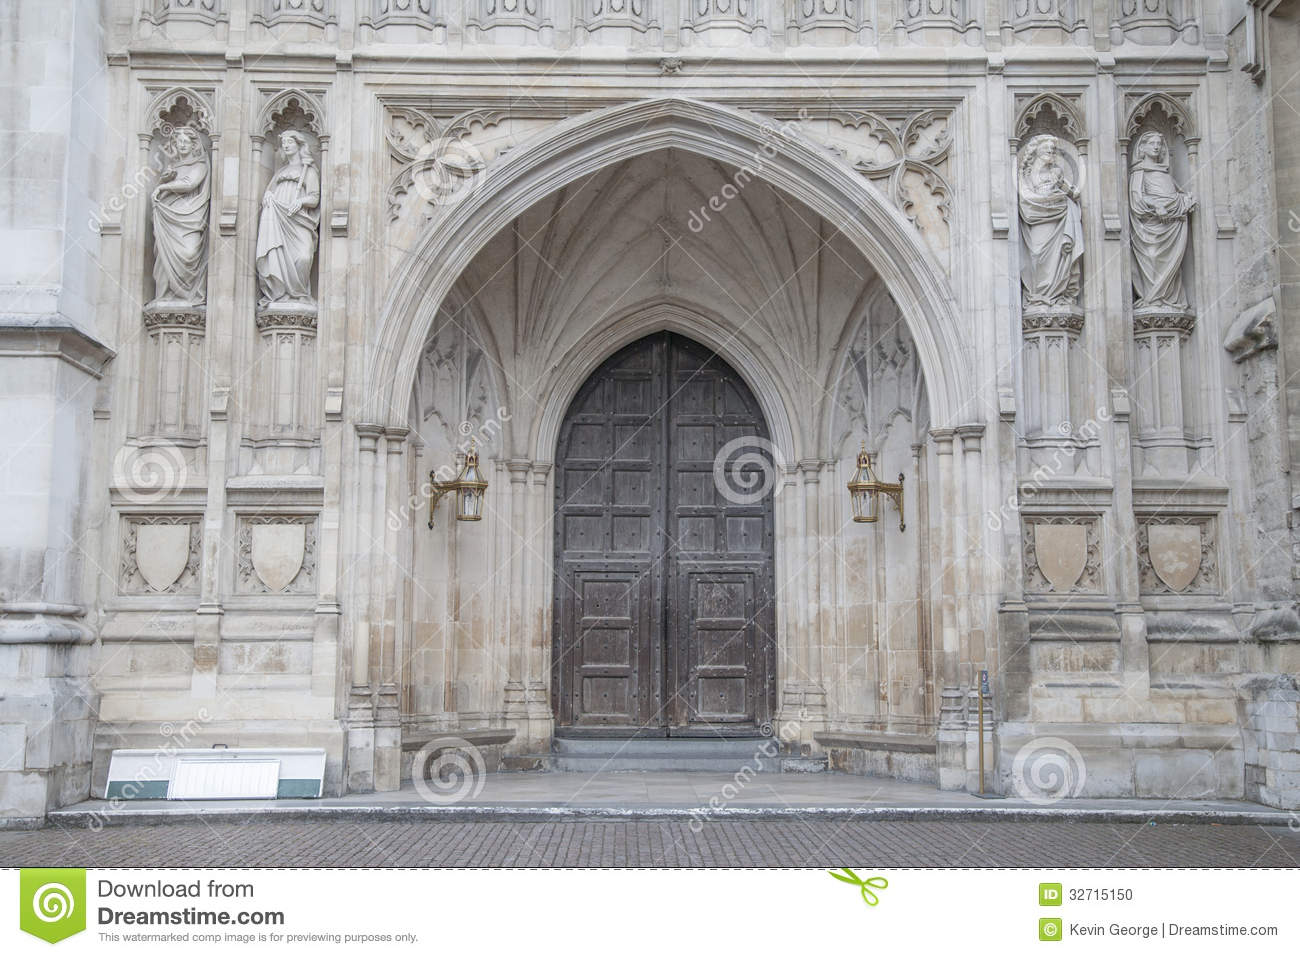 Royalty-Free Stock Photo & Main Entrance Door Of Westminster Abbey London Stock Photo ... pezcame.com